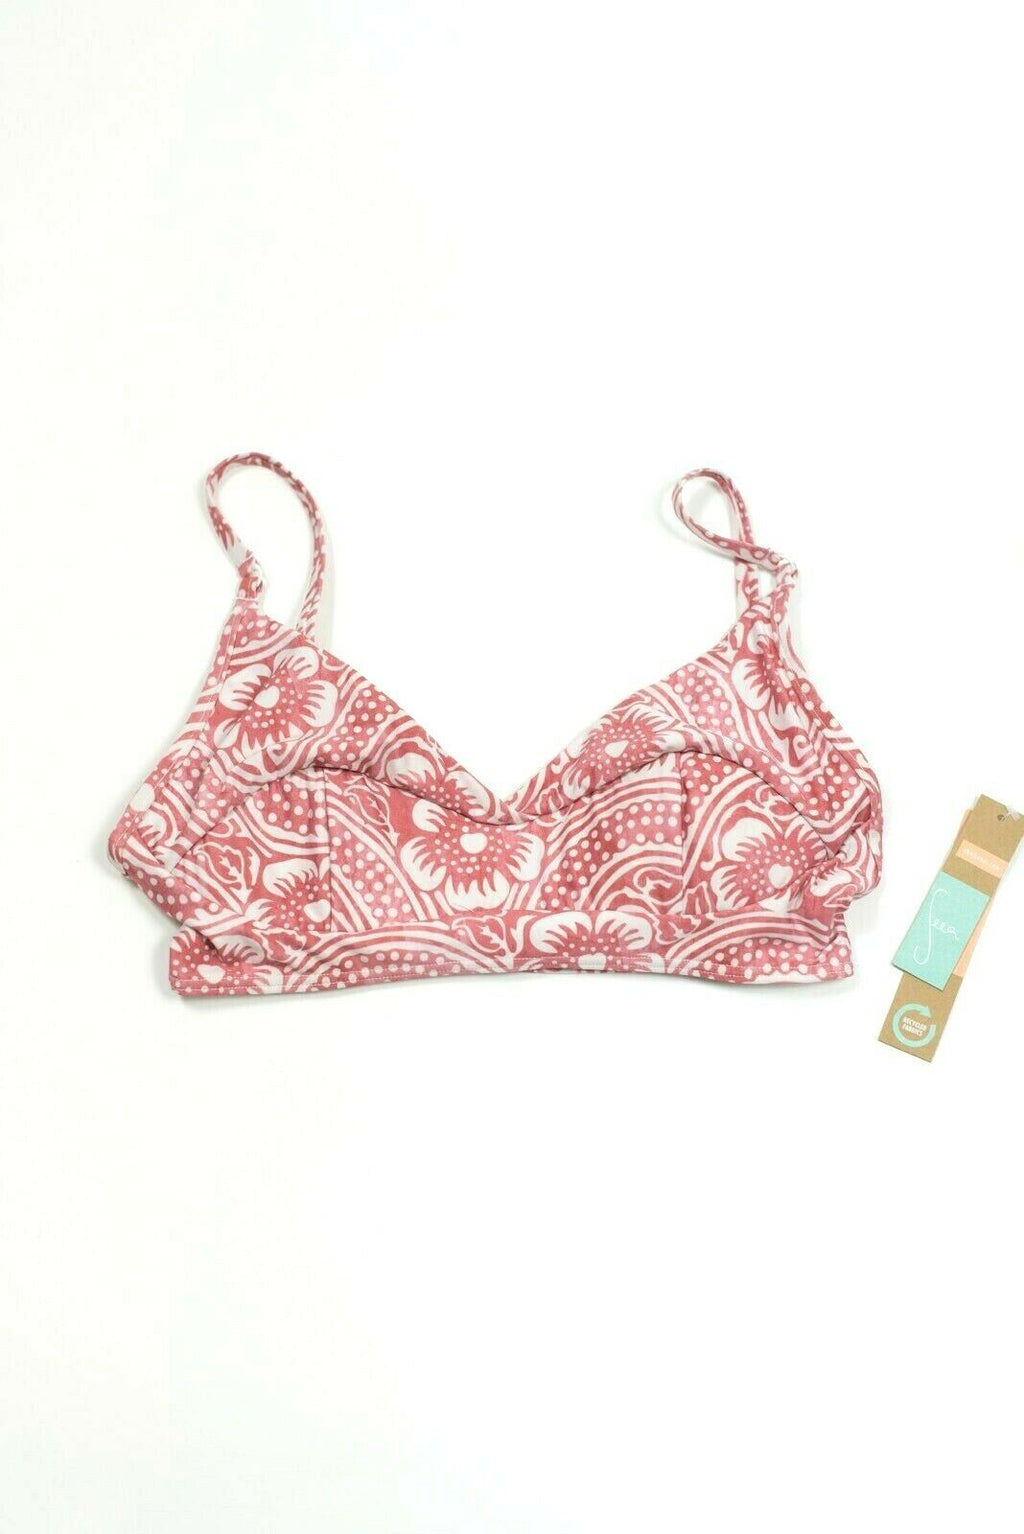 Seea Womens Small Pink Bikini Top Soleil Floral Crop Top Swimsuit Tank Shirt NWT